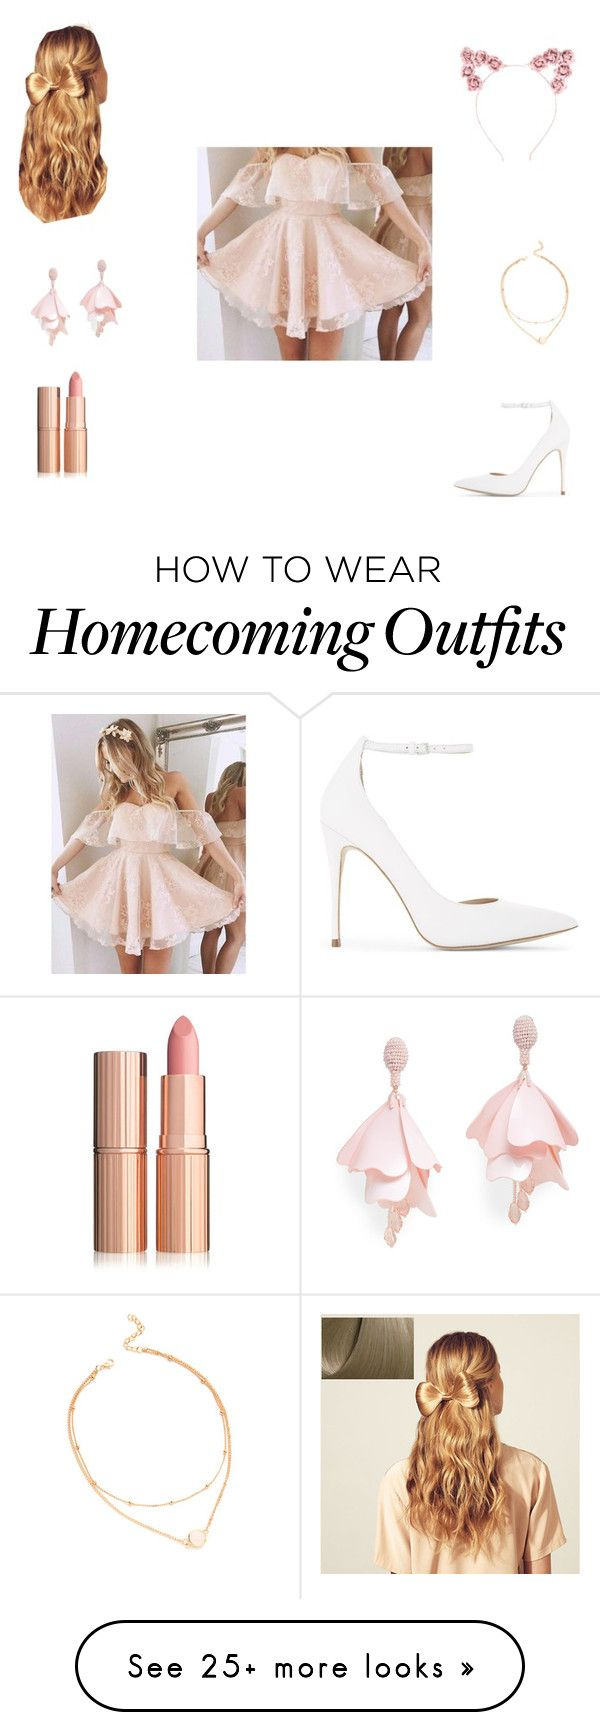 """Homecoming/prom outfit❤️"" by kelma1789 on Polyvore featuring Hershesons, Hot Topic, Oscar de la Renta Pink Label and ALDO"